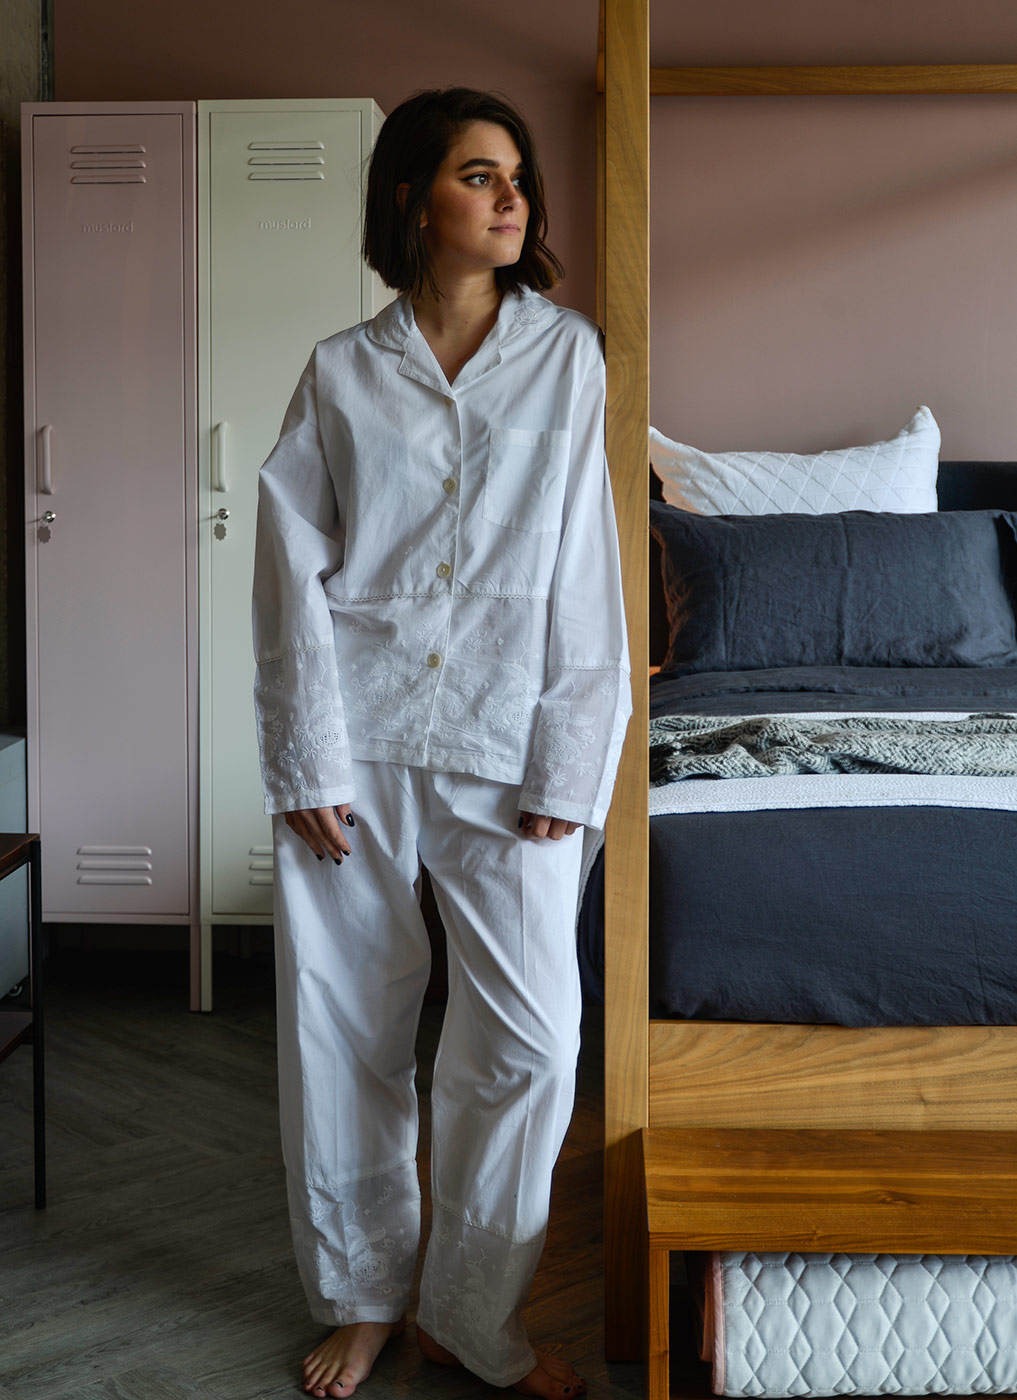 lightweight white cotton pjs with embroidered hem panels